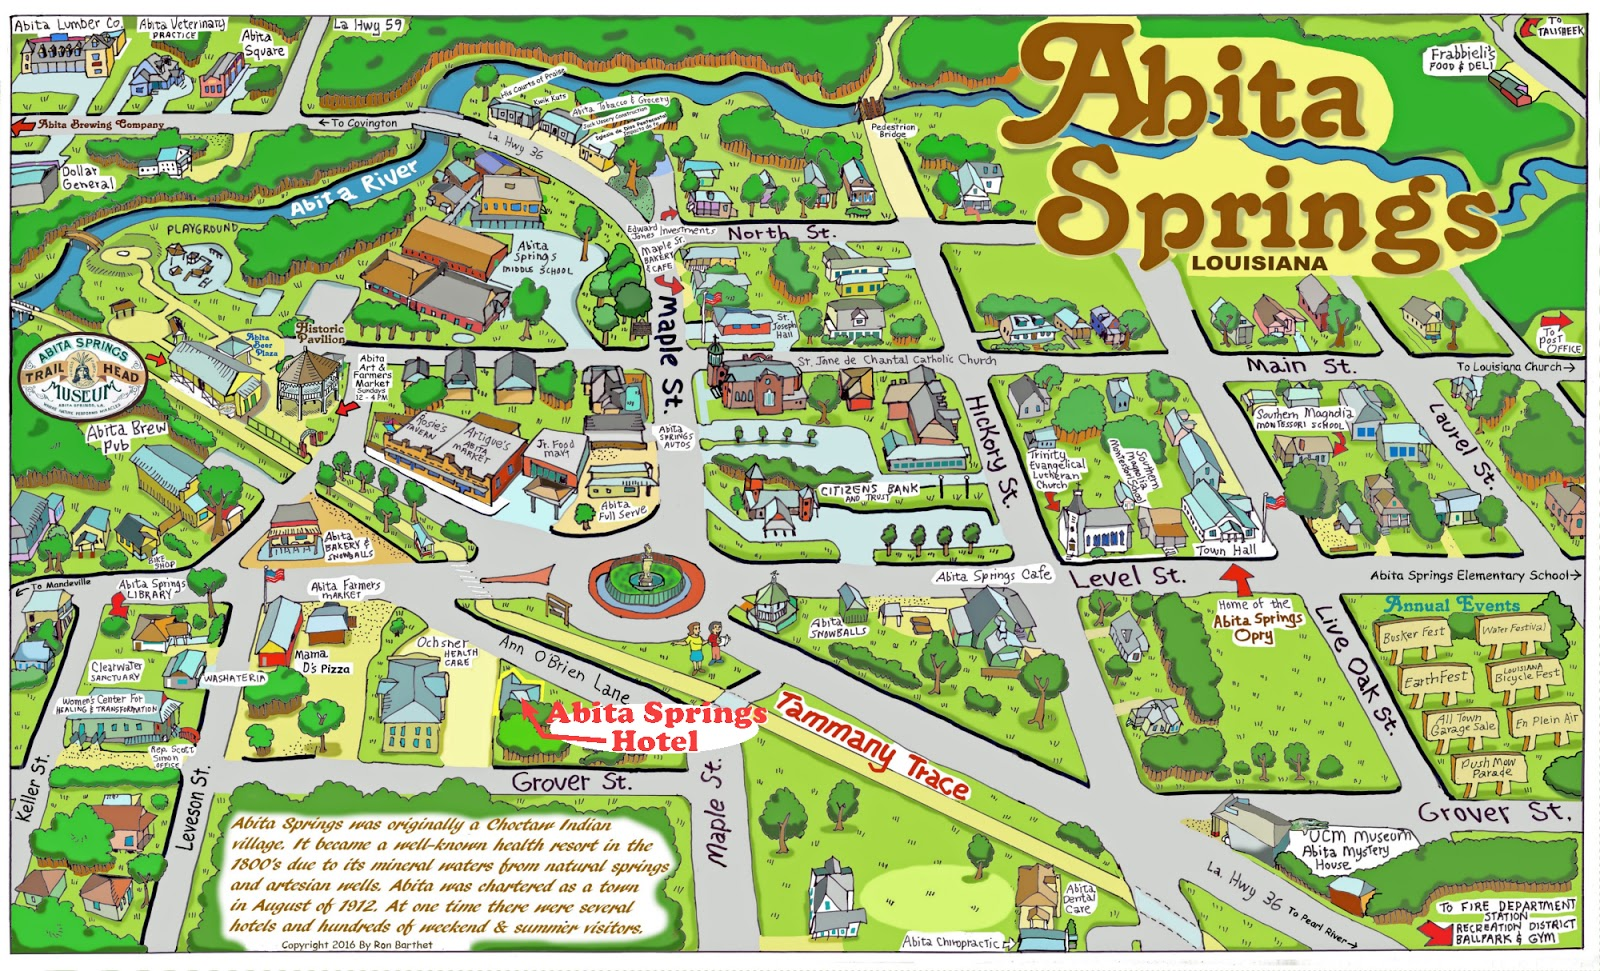 see also a brief history of abita springs